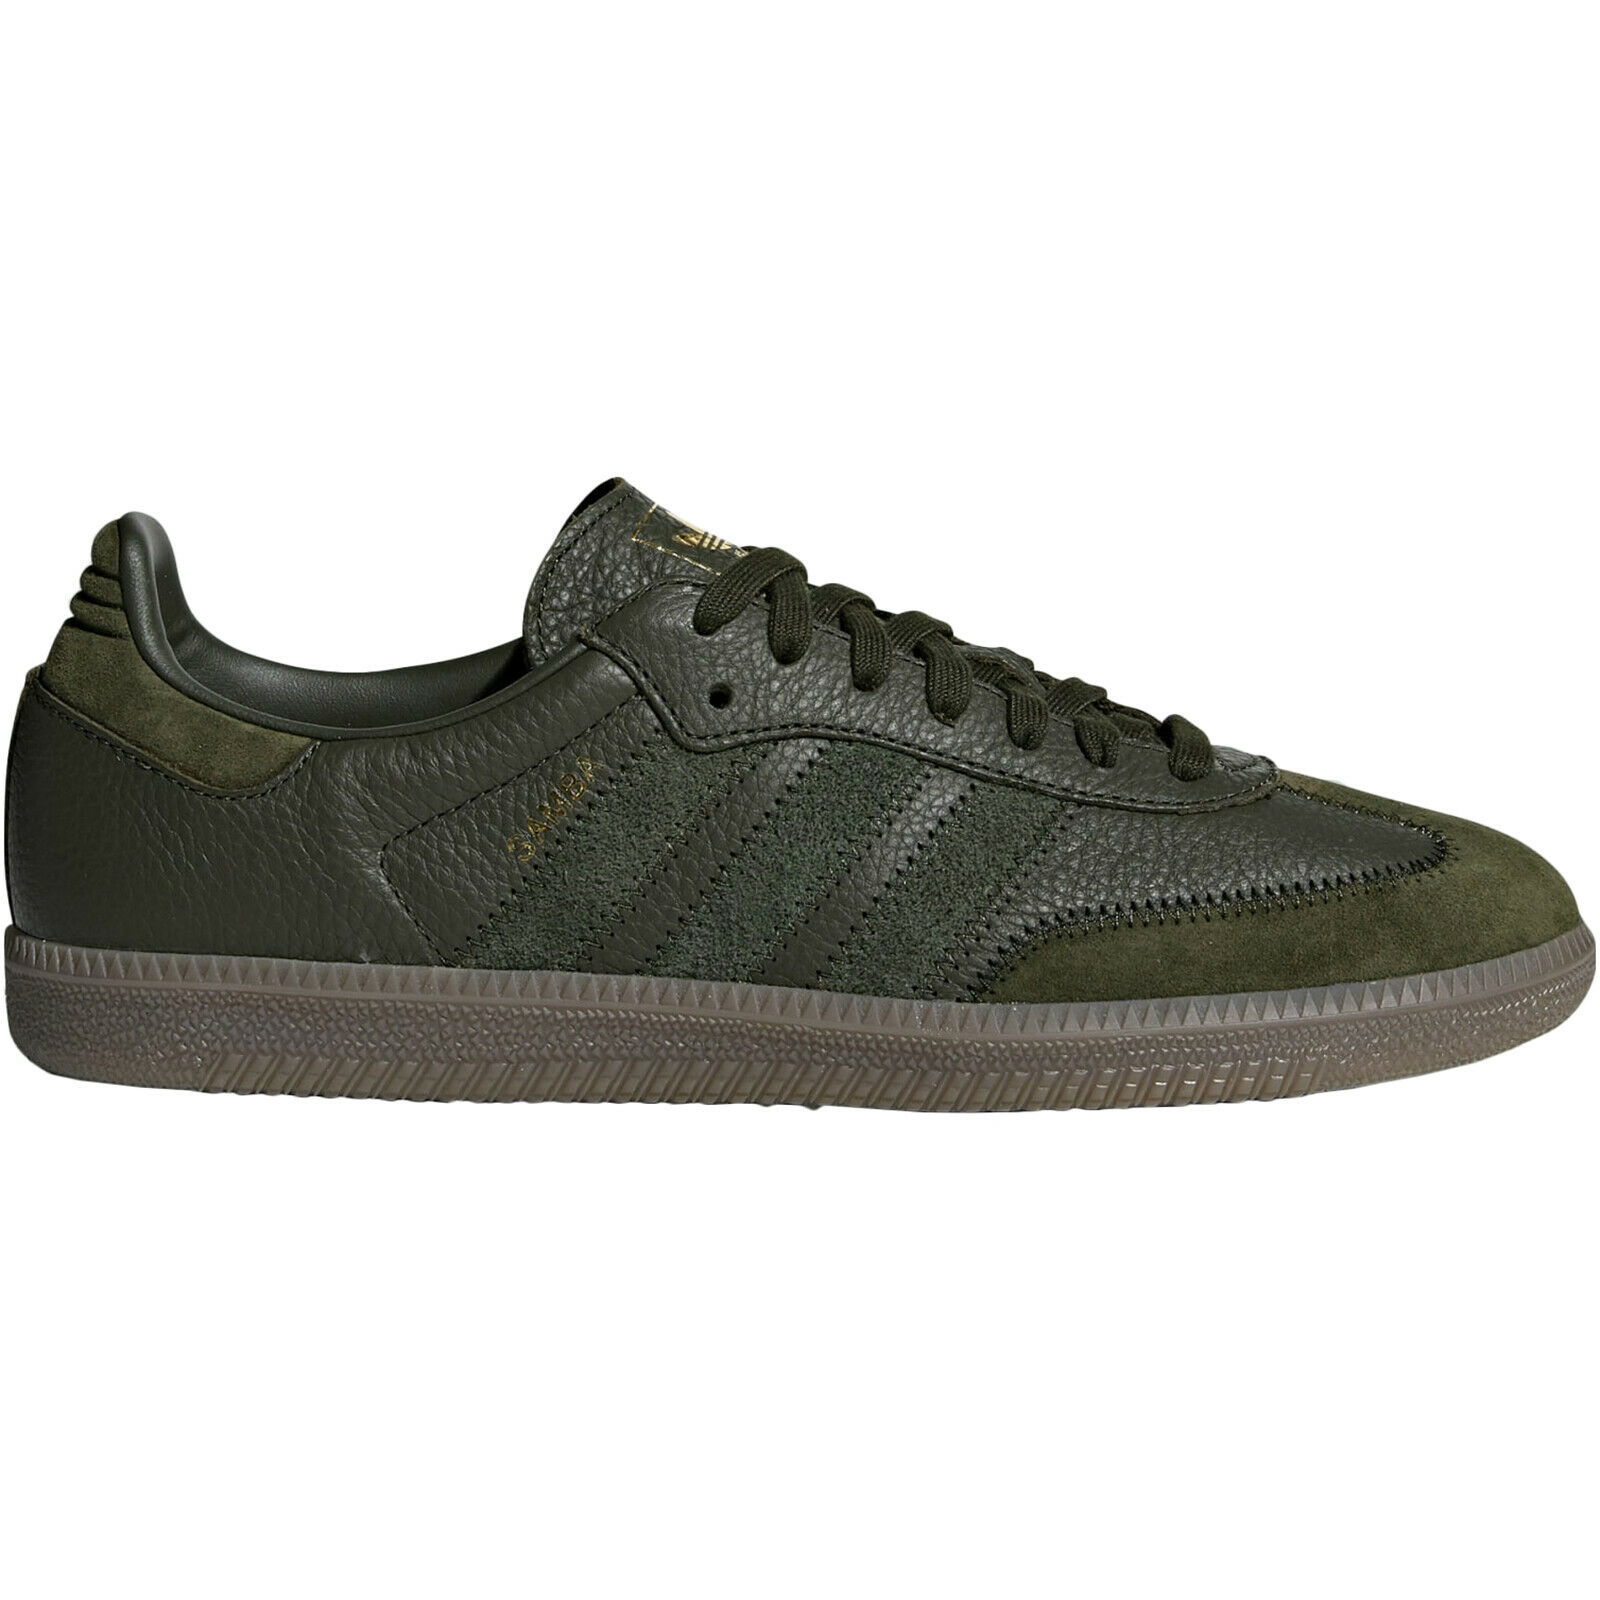 Adidas Samba OG FT Leather Classic Lace-Up Sneakers Mens Trainers